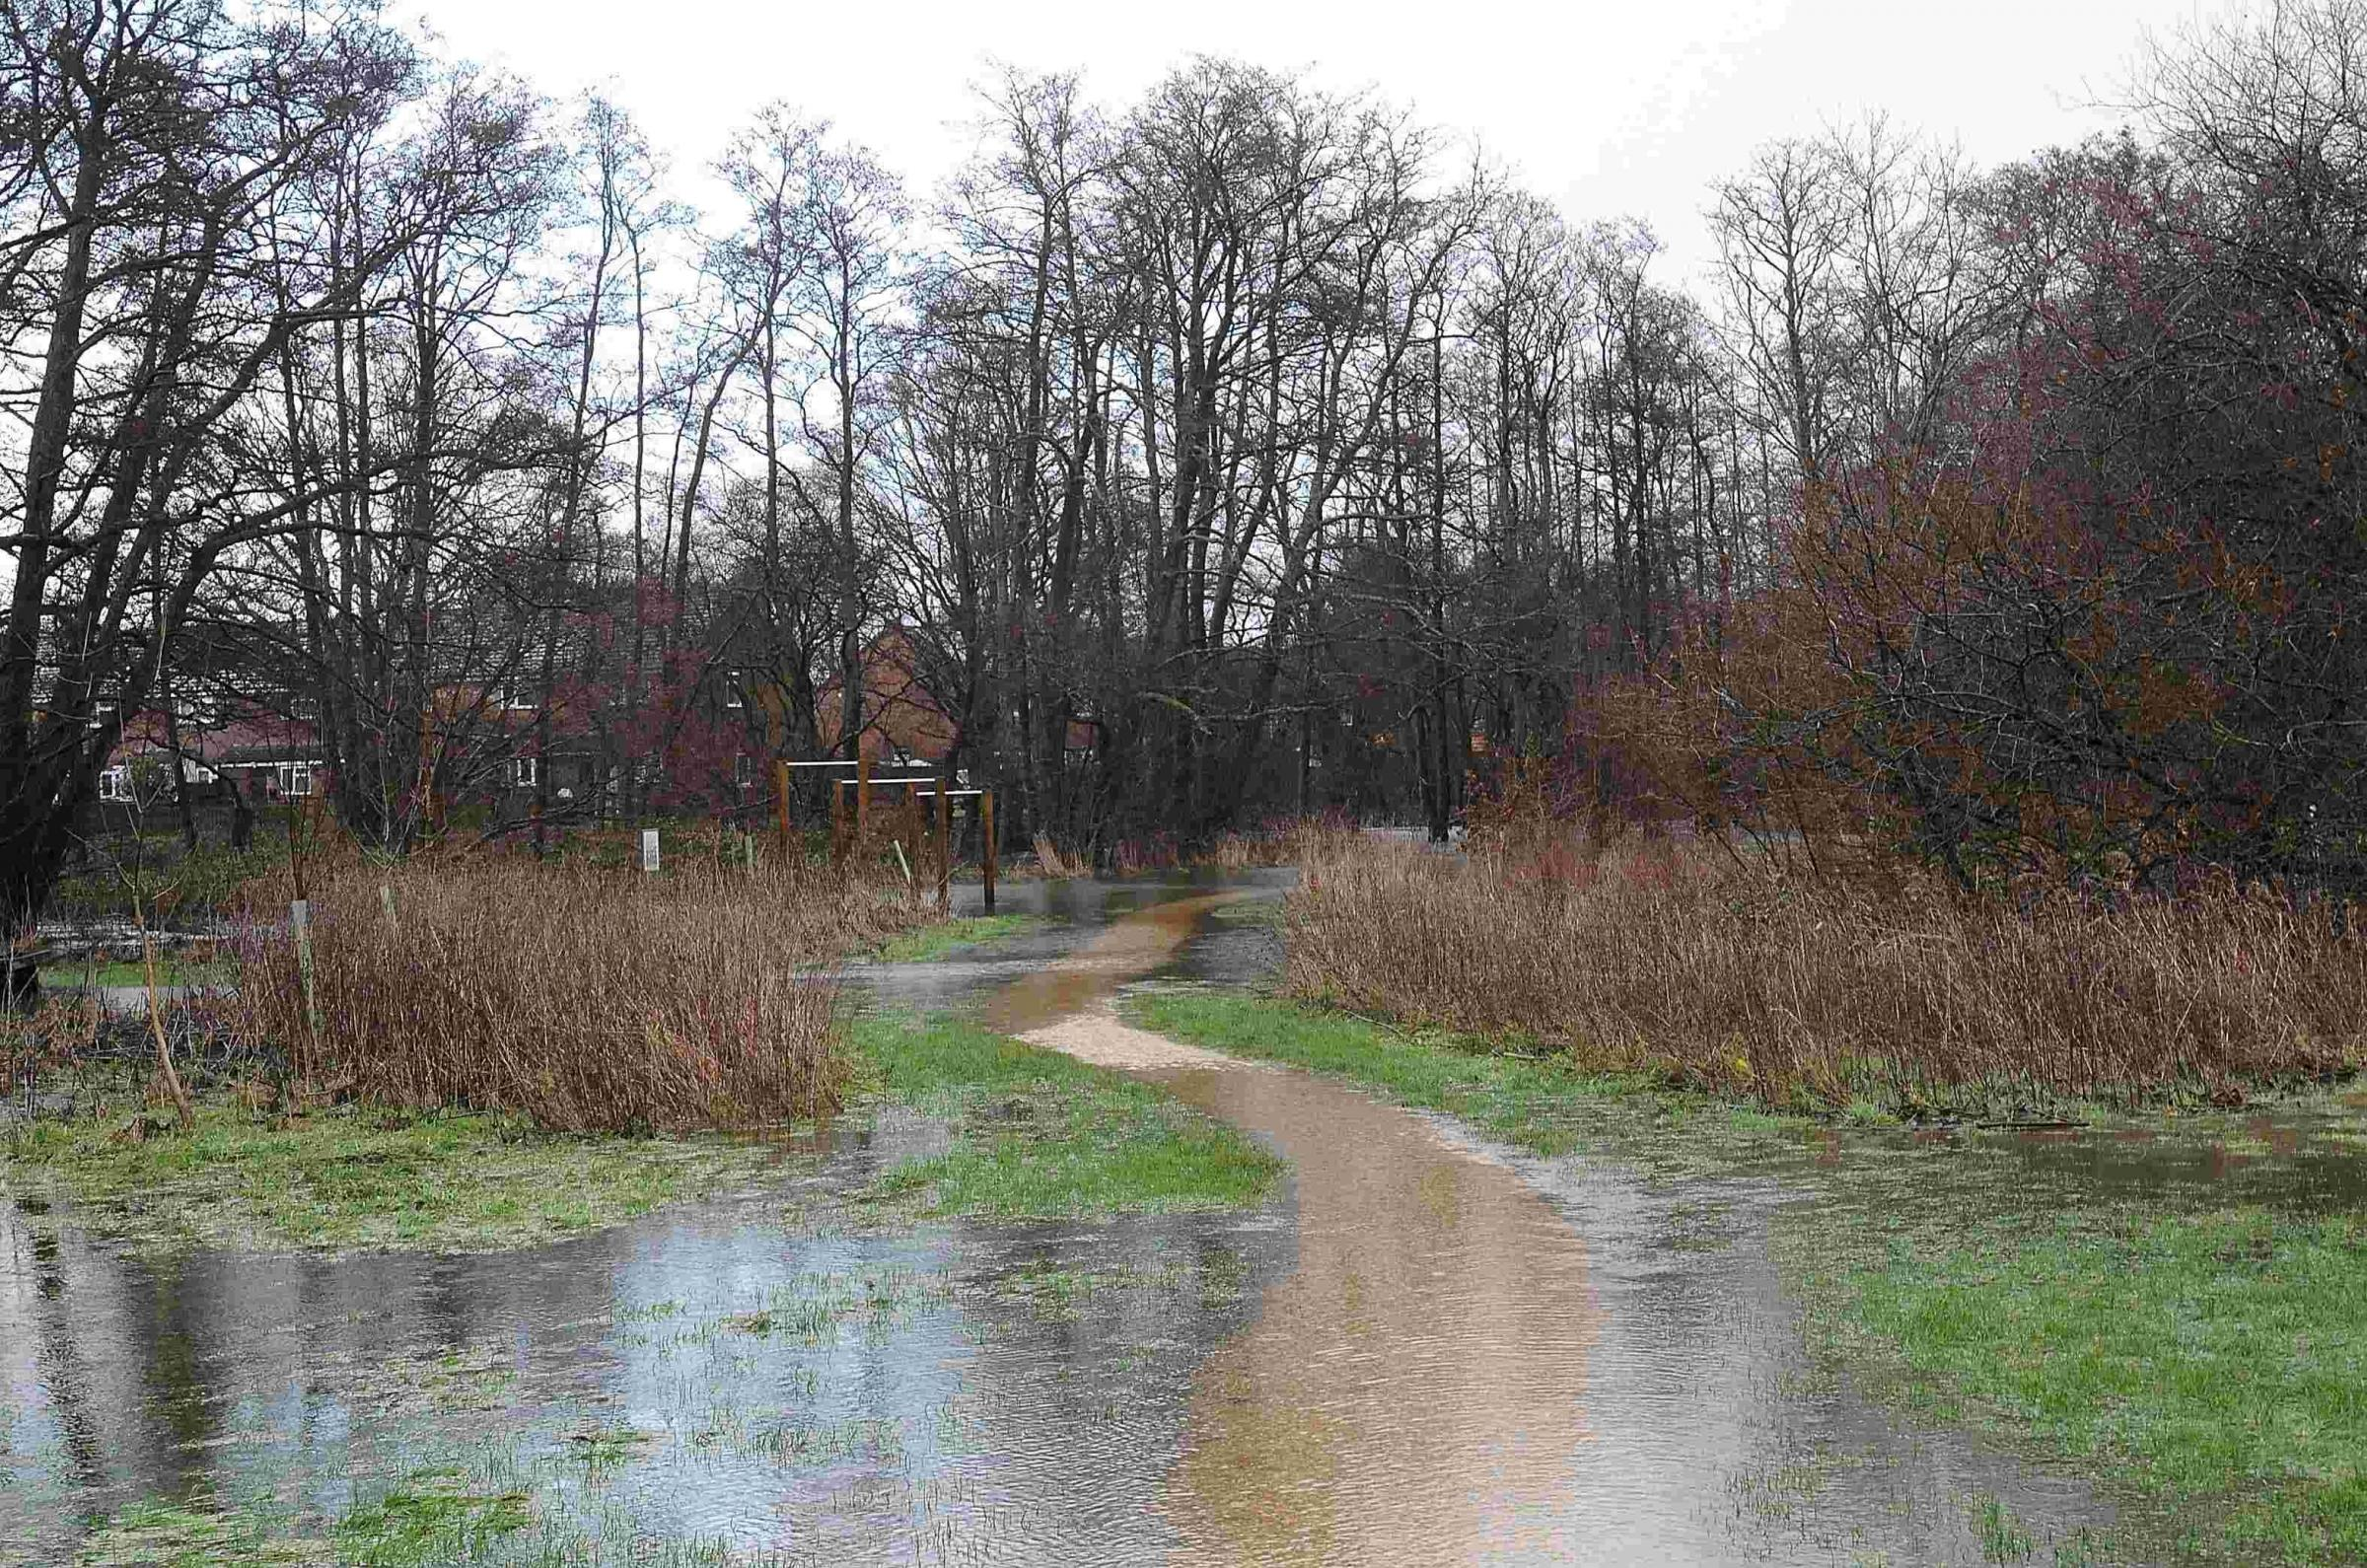 Flooding at Potterne Park in Verwood